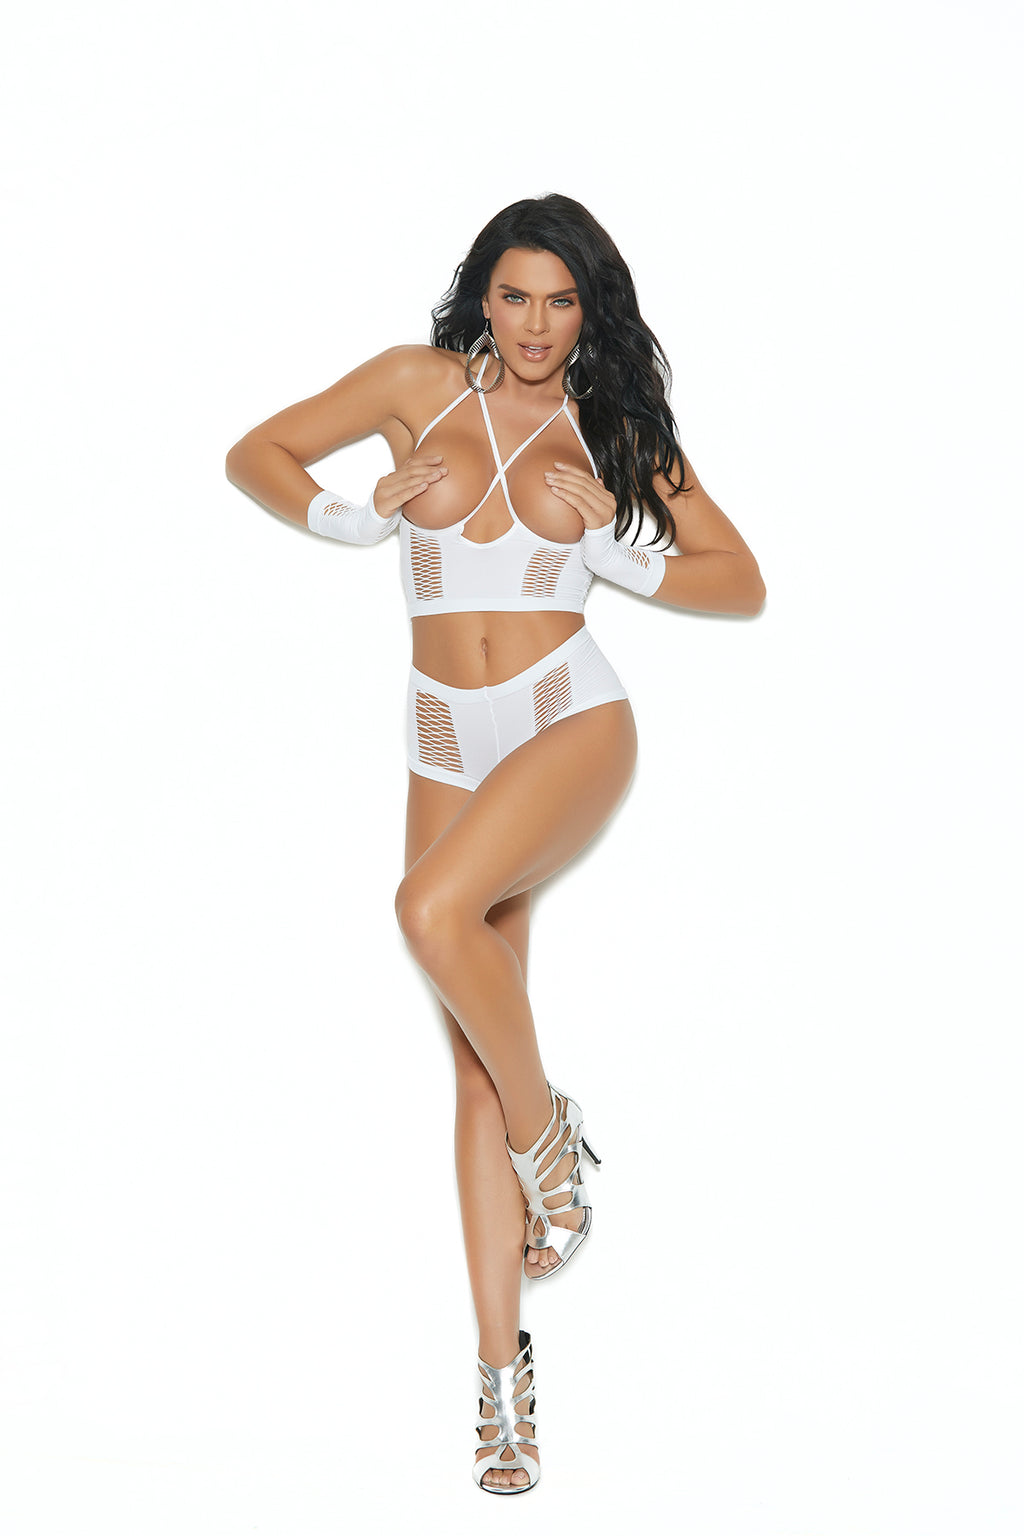 Cami Top, Booty Shorts, and Gloves - One Size -  White - Elegant Moments -  Los Angeles Lingerie